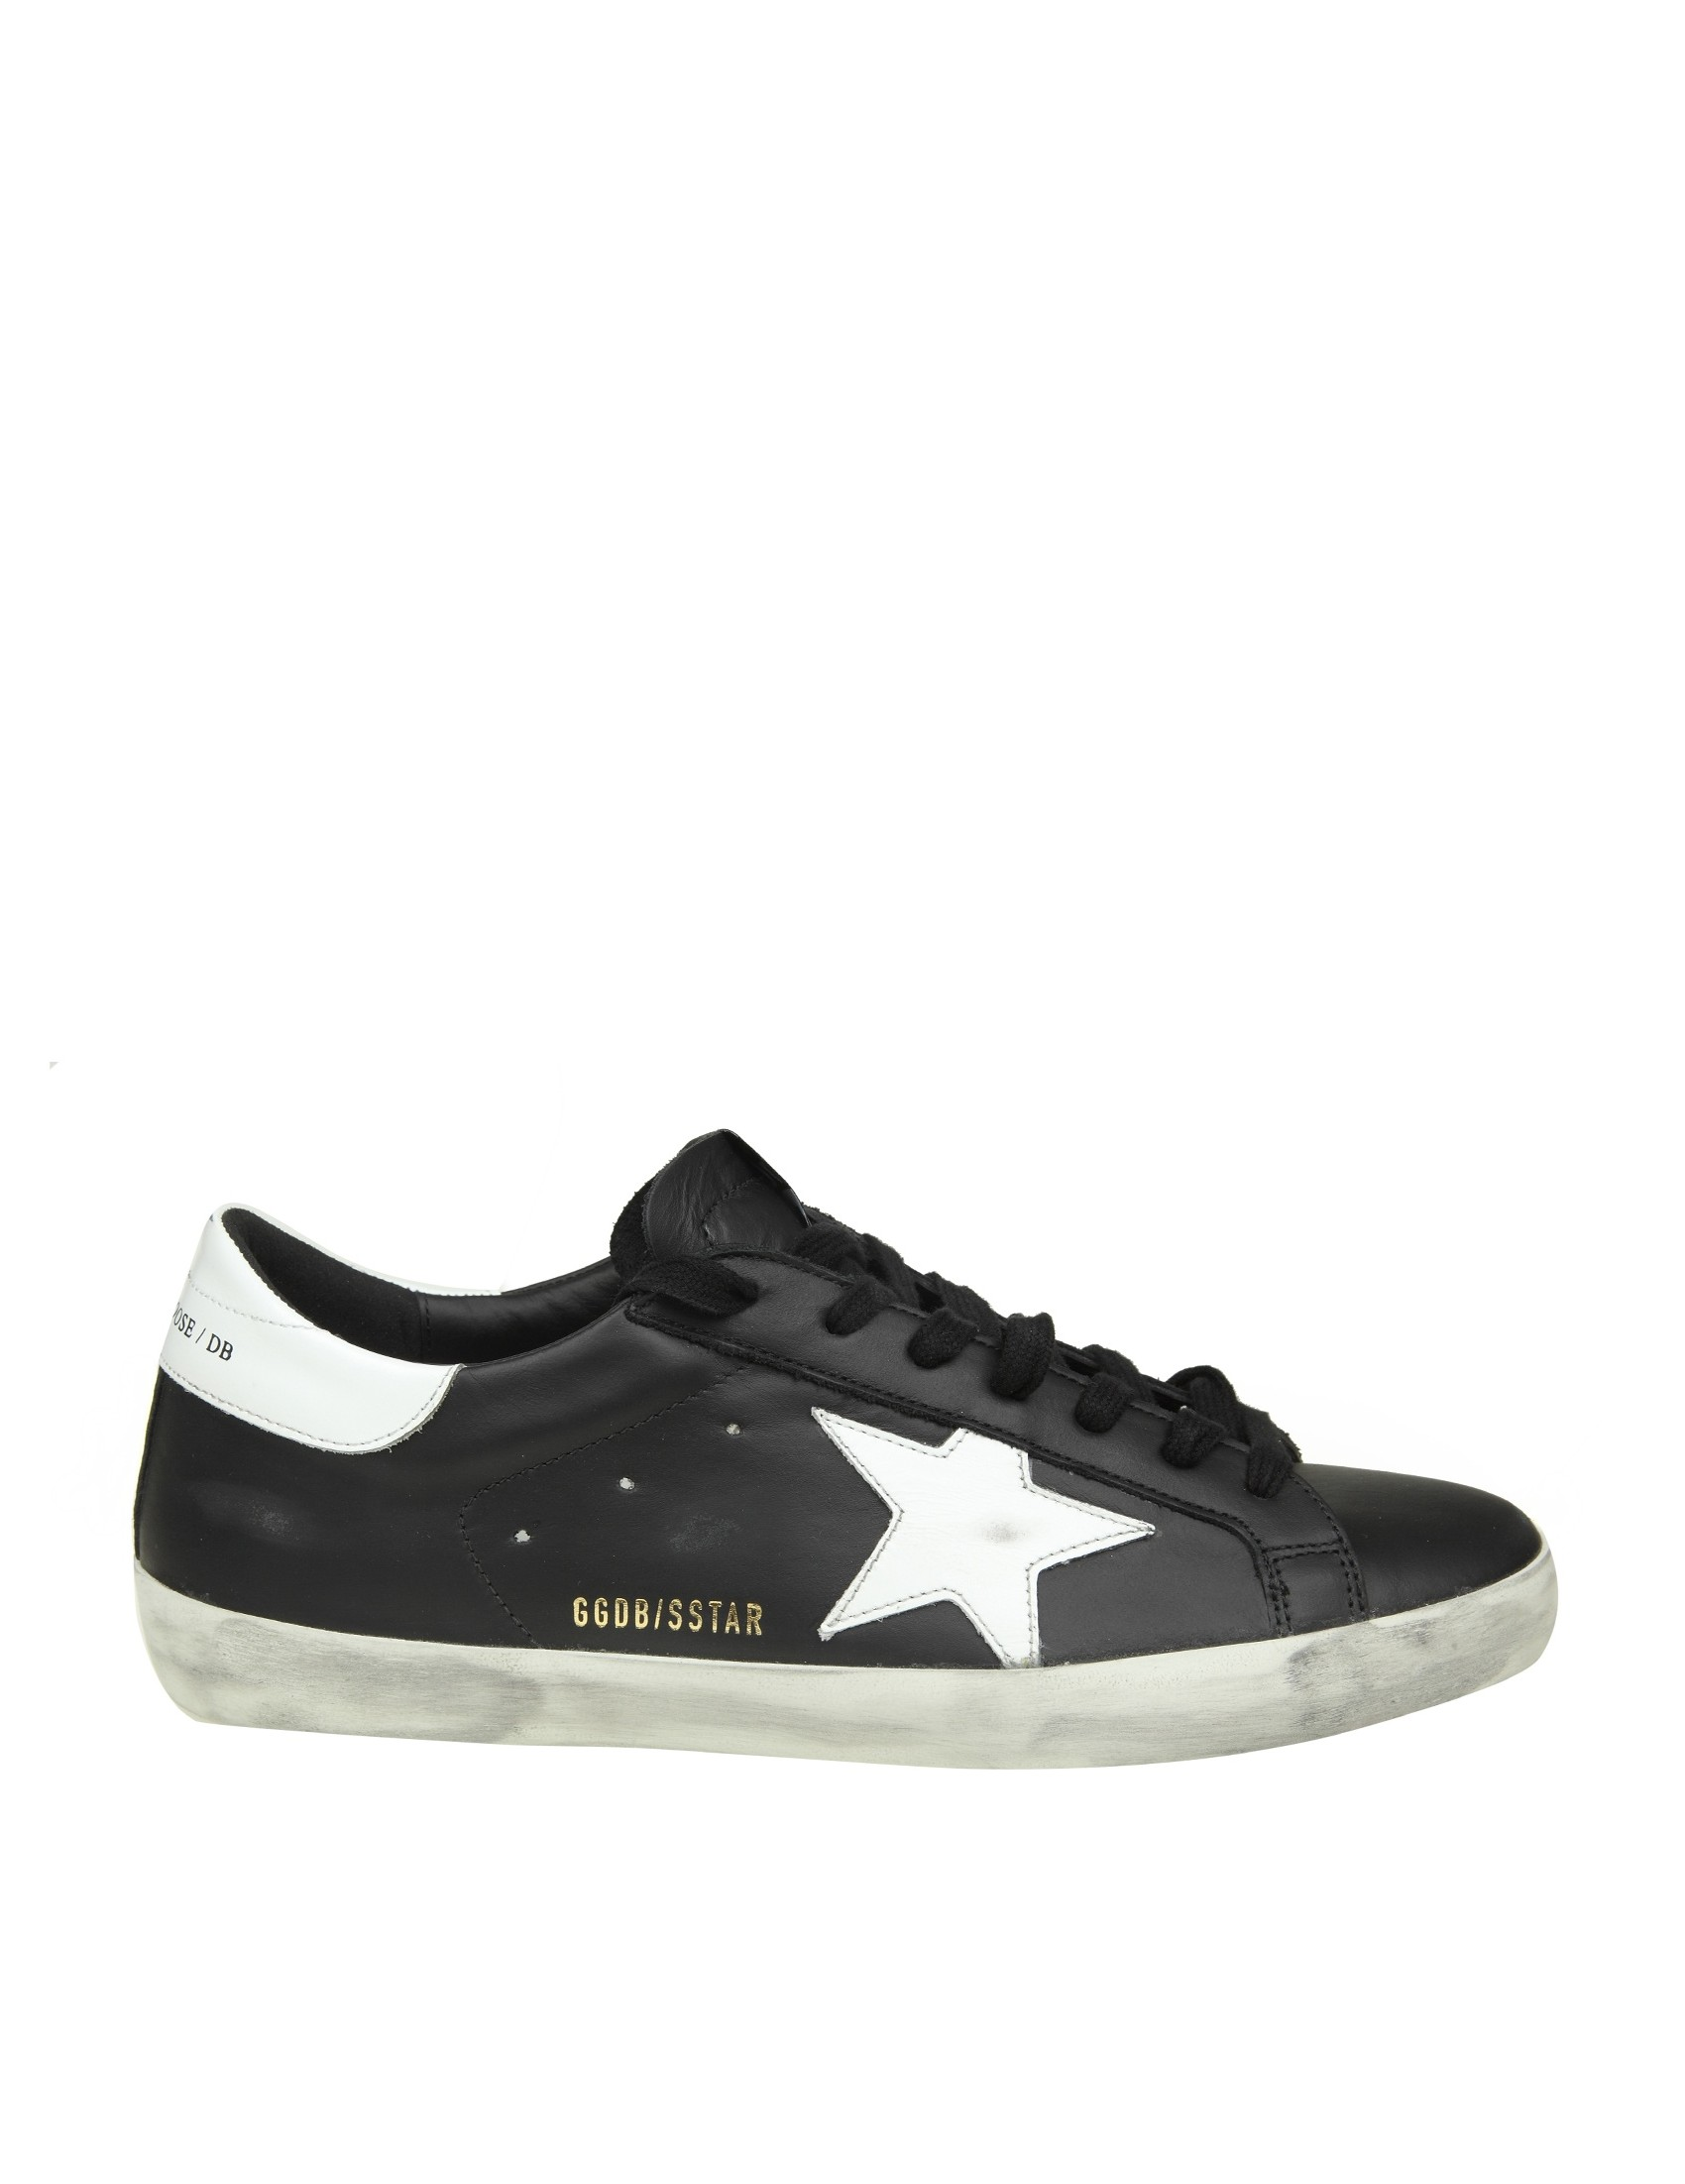 golden goose new collection